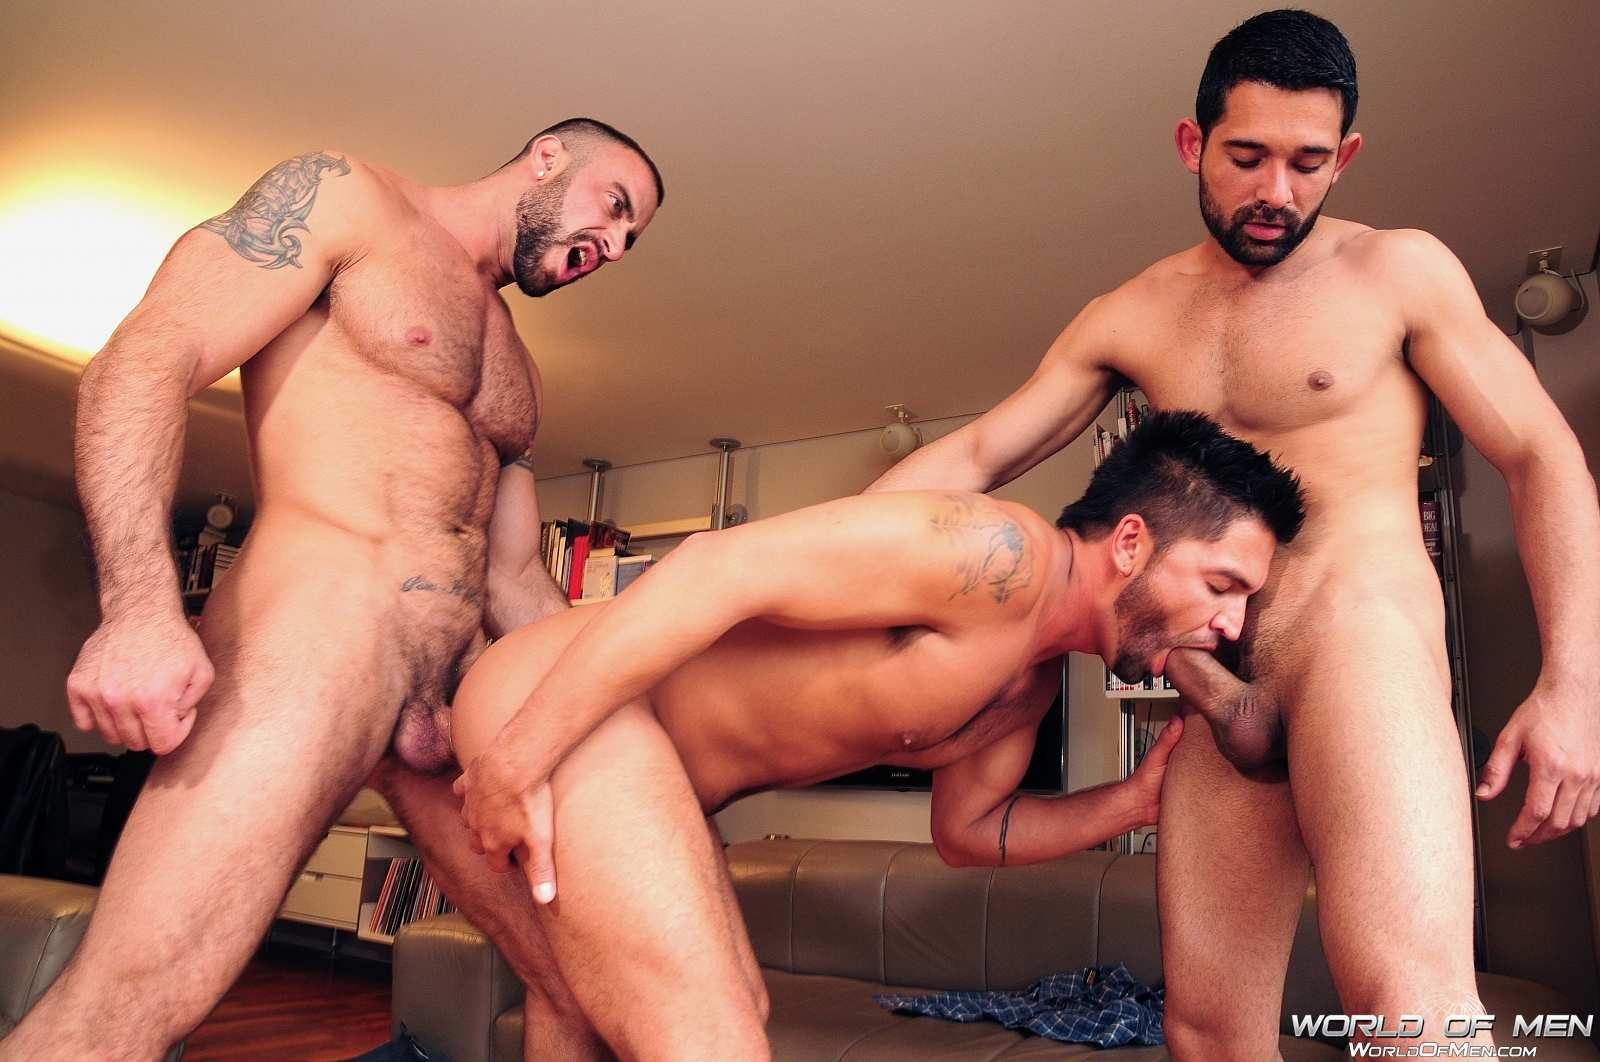 All guy gay threesome